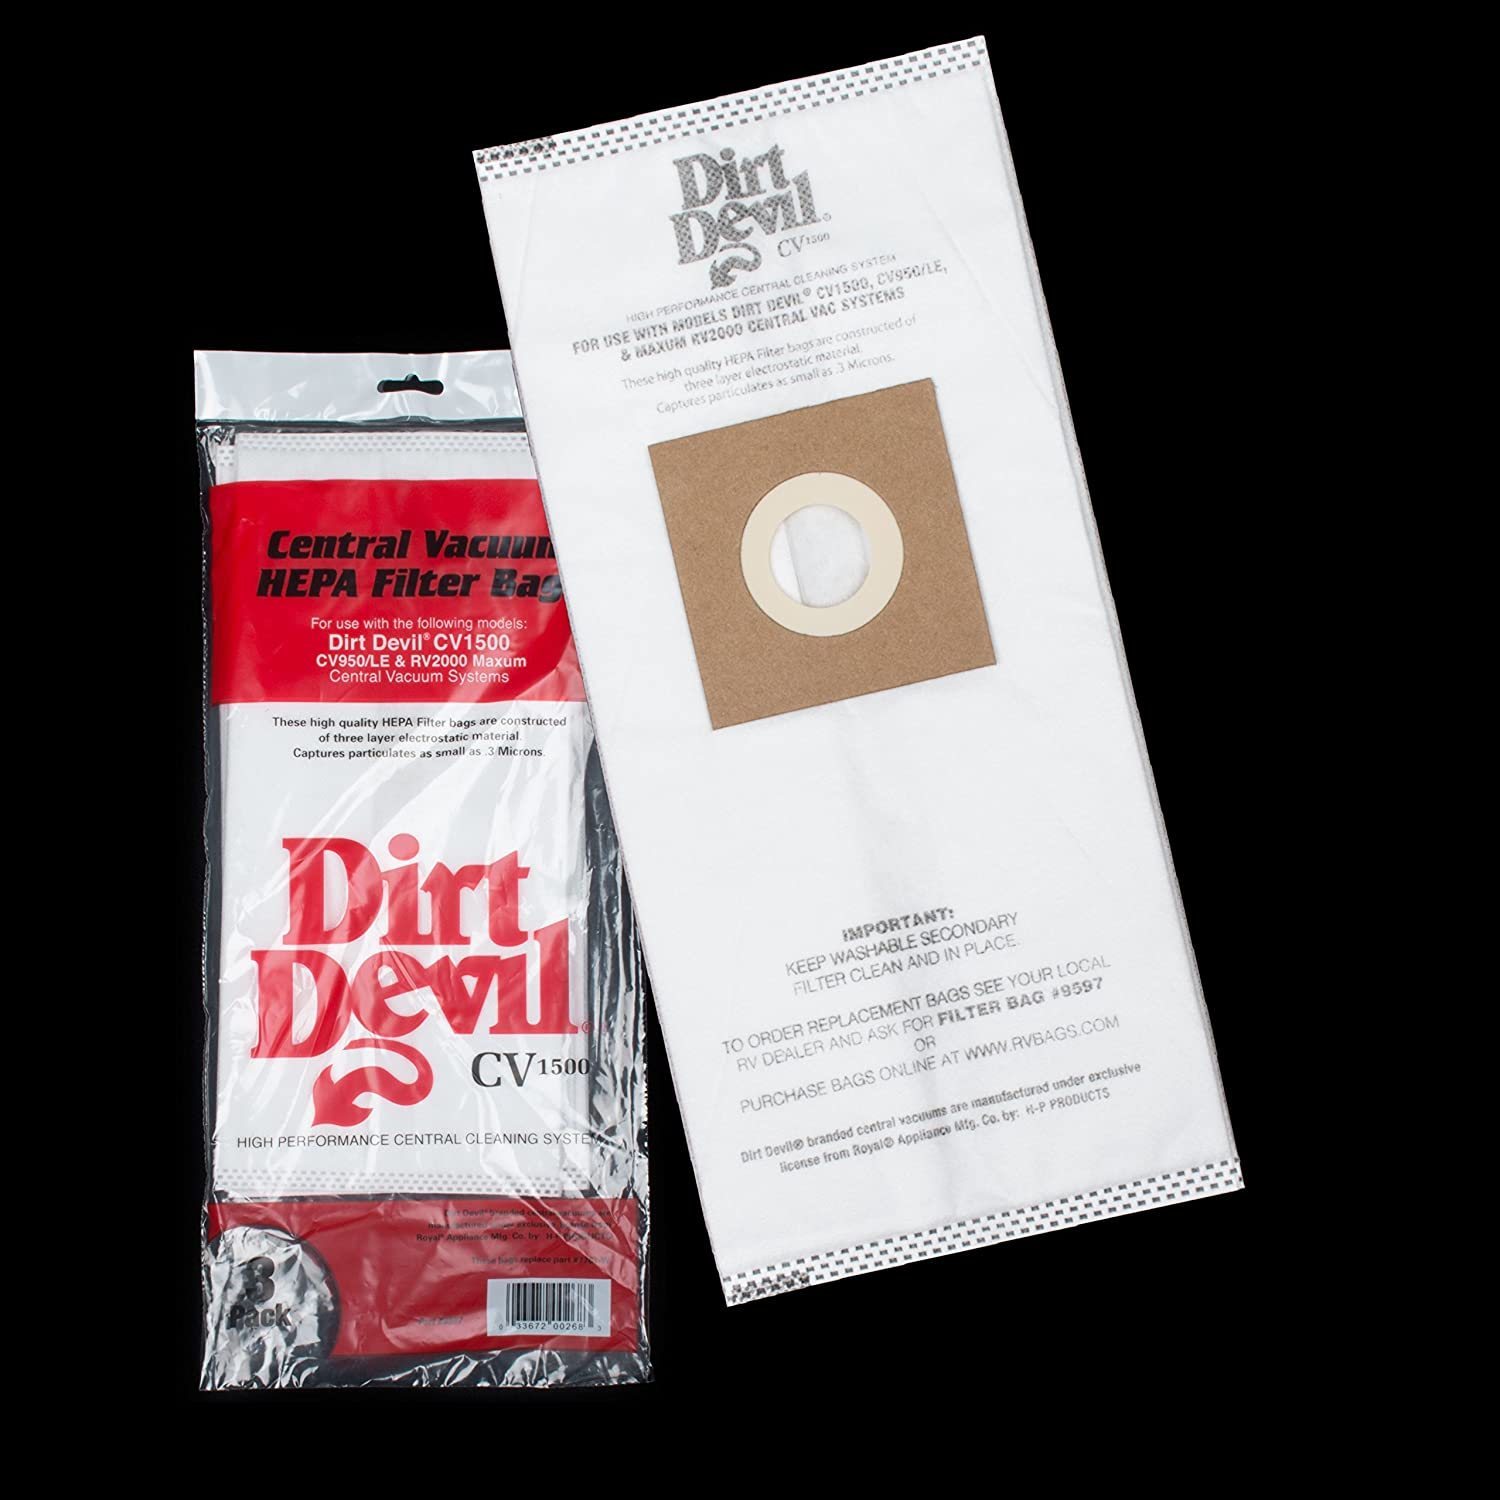 Dirt Devil Central Vacuum Cleaner HP, CV950,CV1500 Vacuum Bags 3 Pk Part # 7767-W, 9597